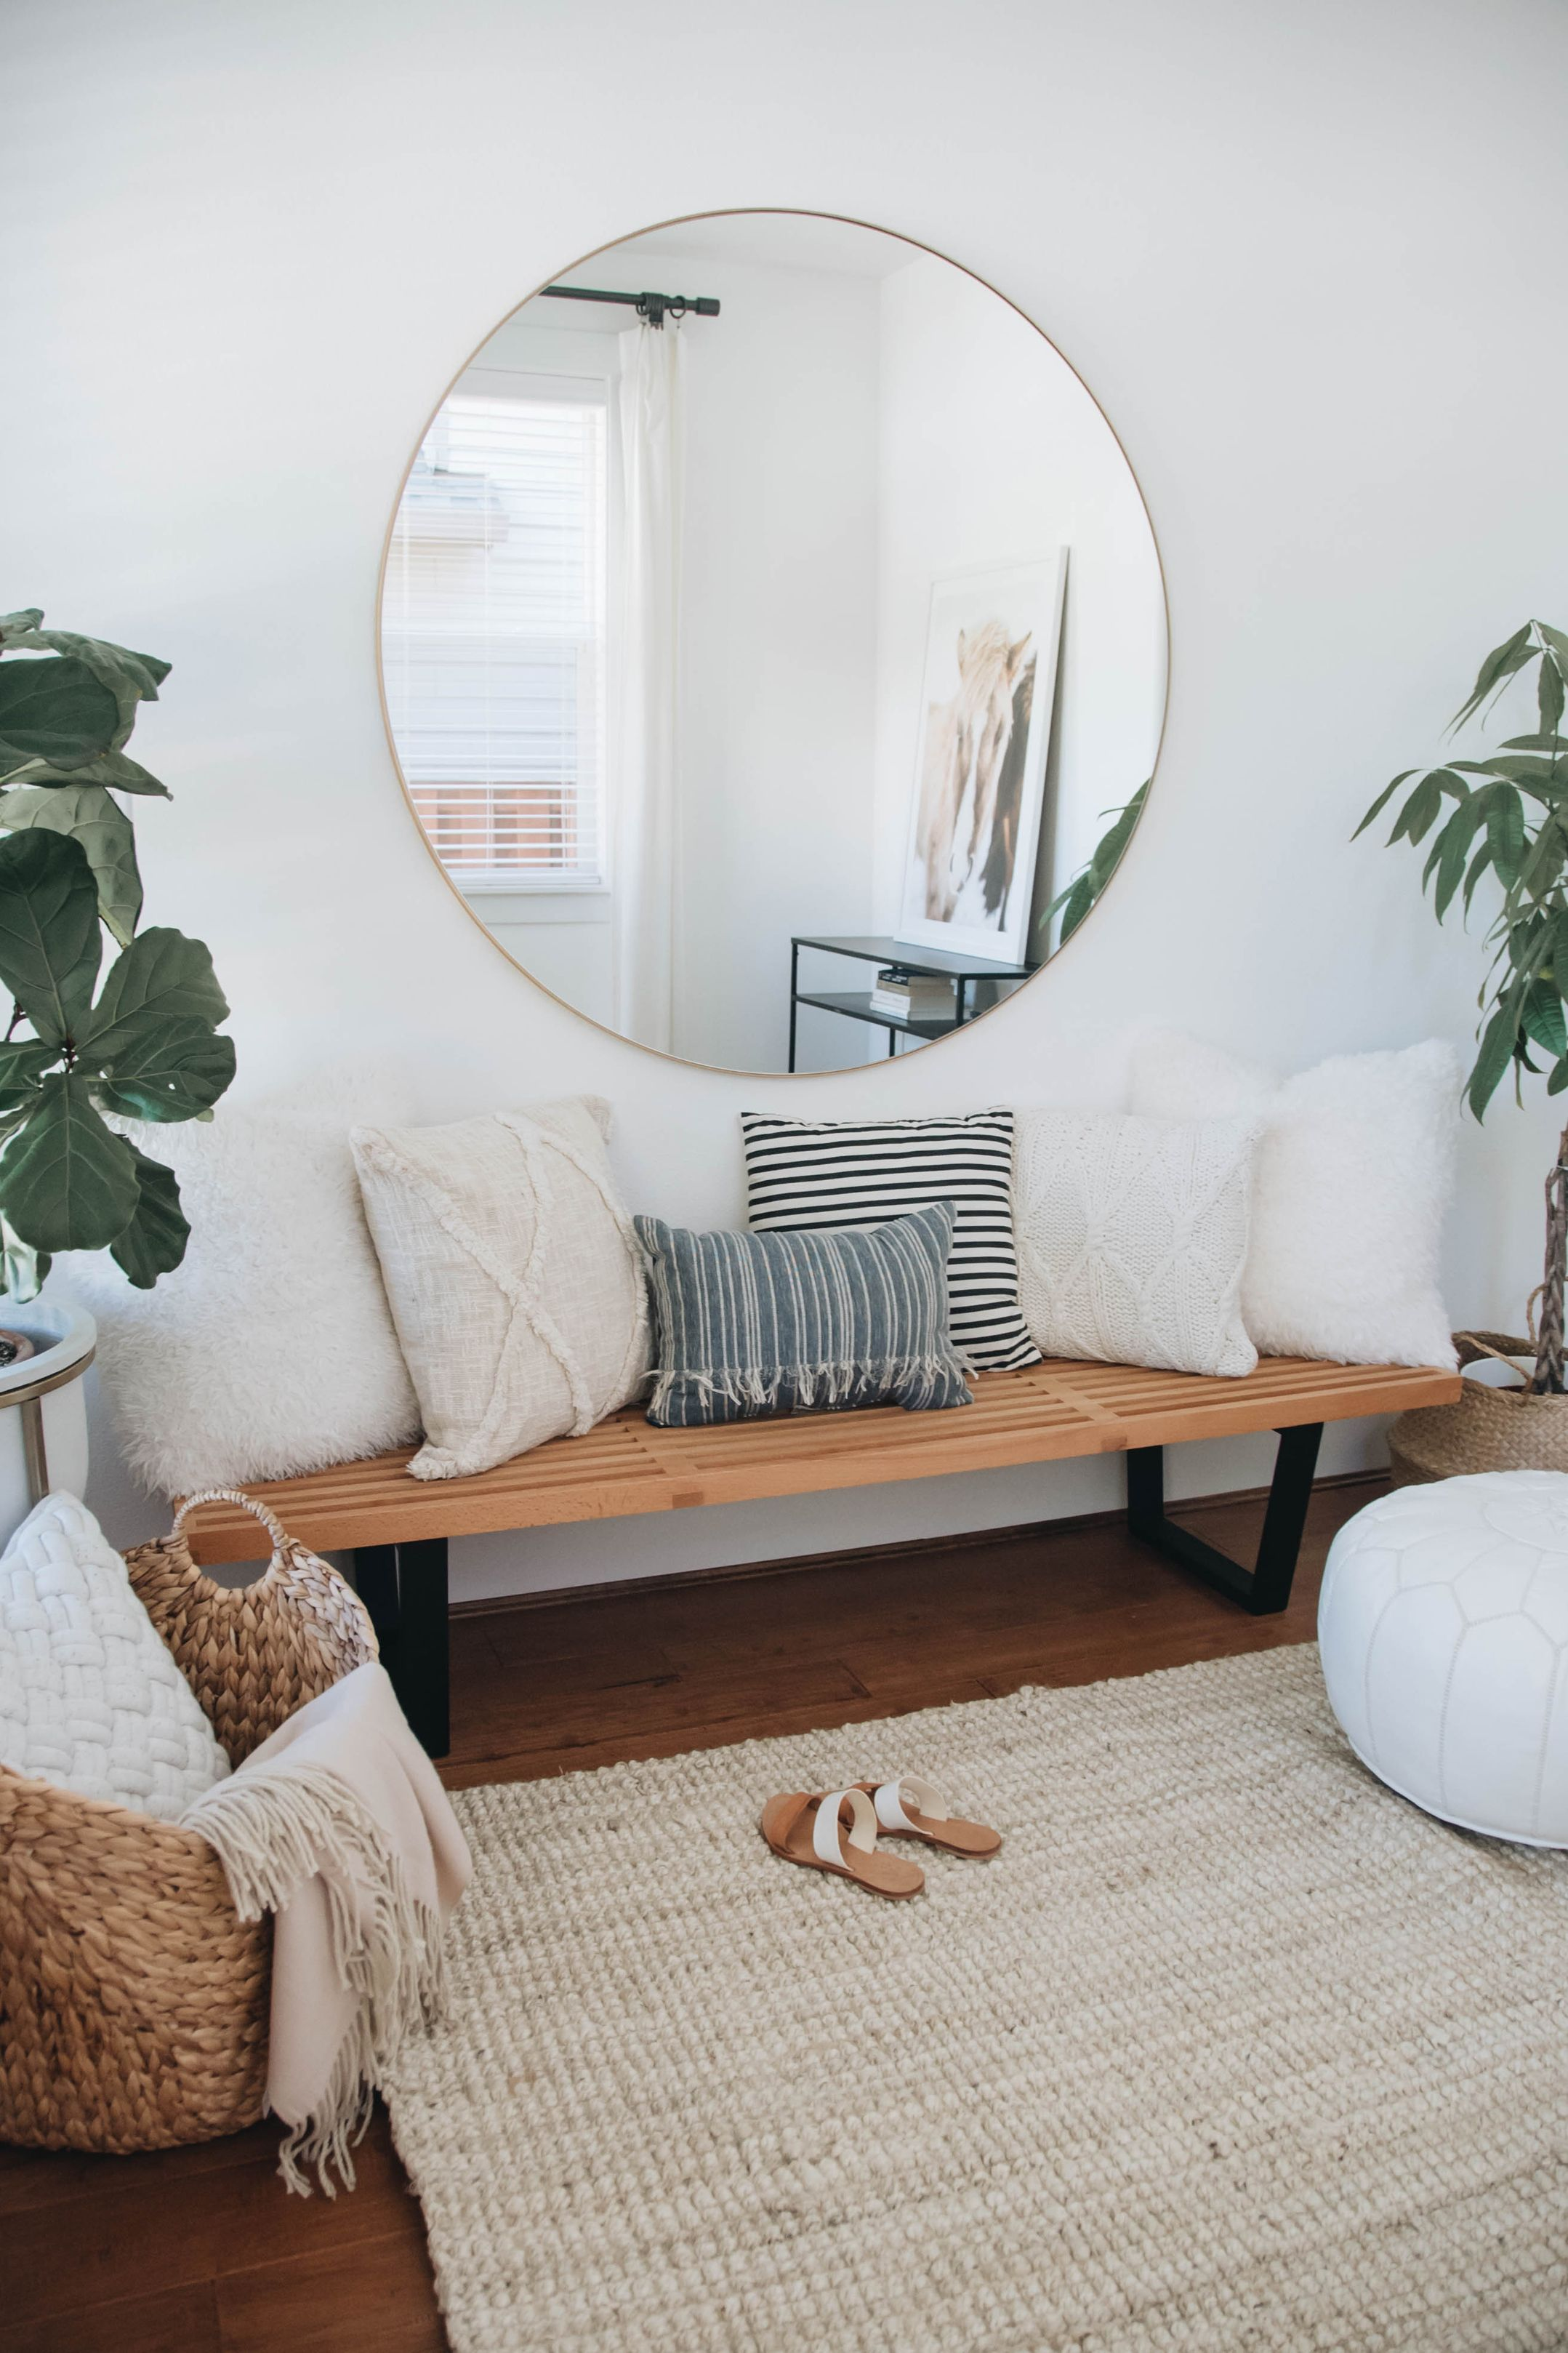 Walmart Home – Coastal Vibes in the Entry